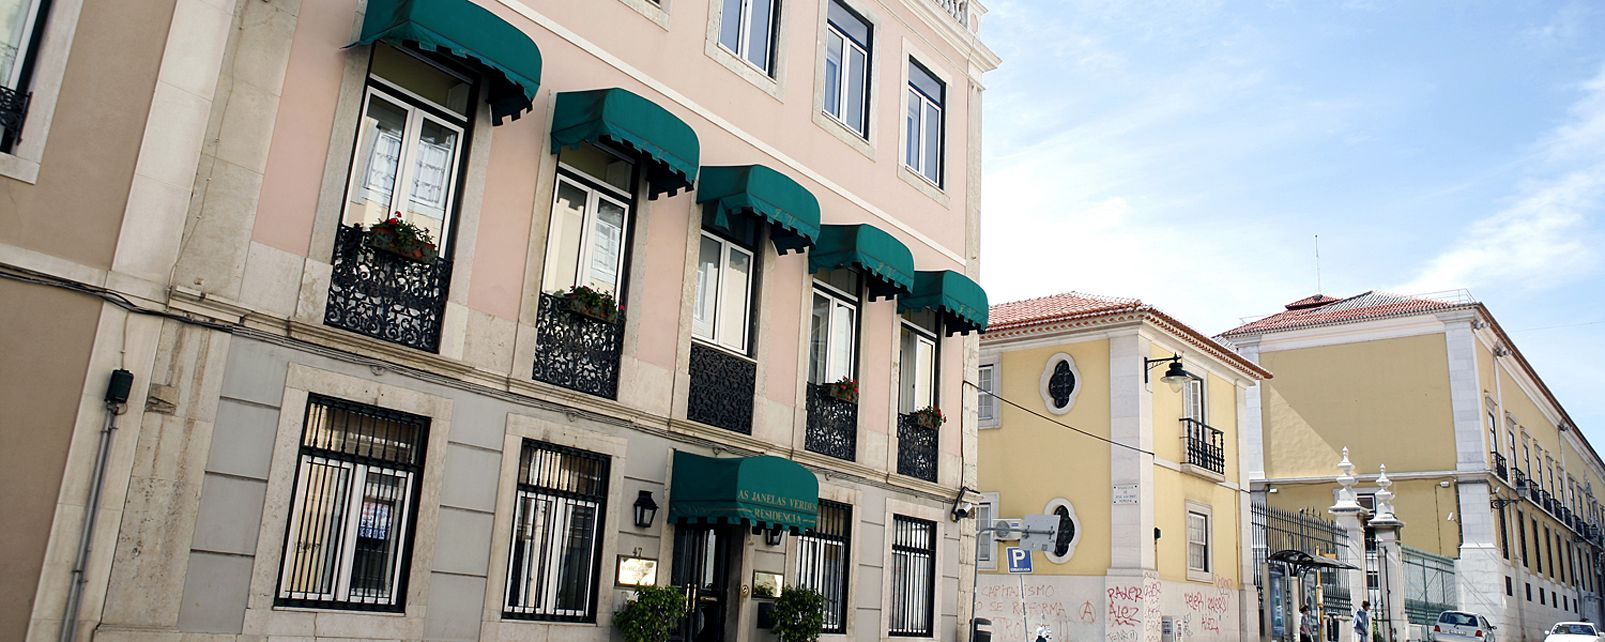 Hotel As Janelas Verdes Inn